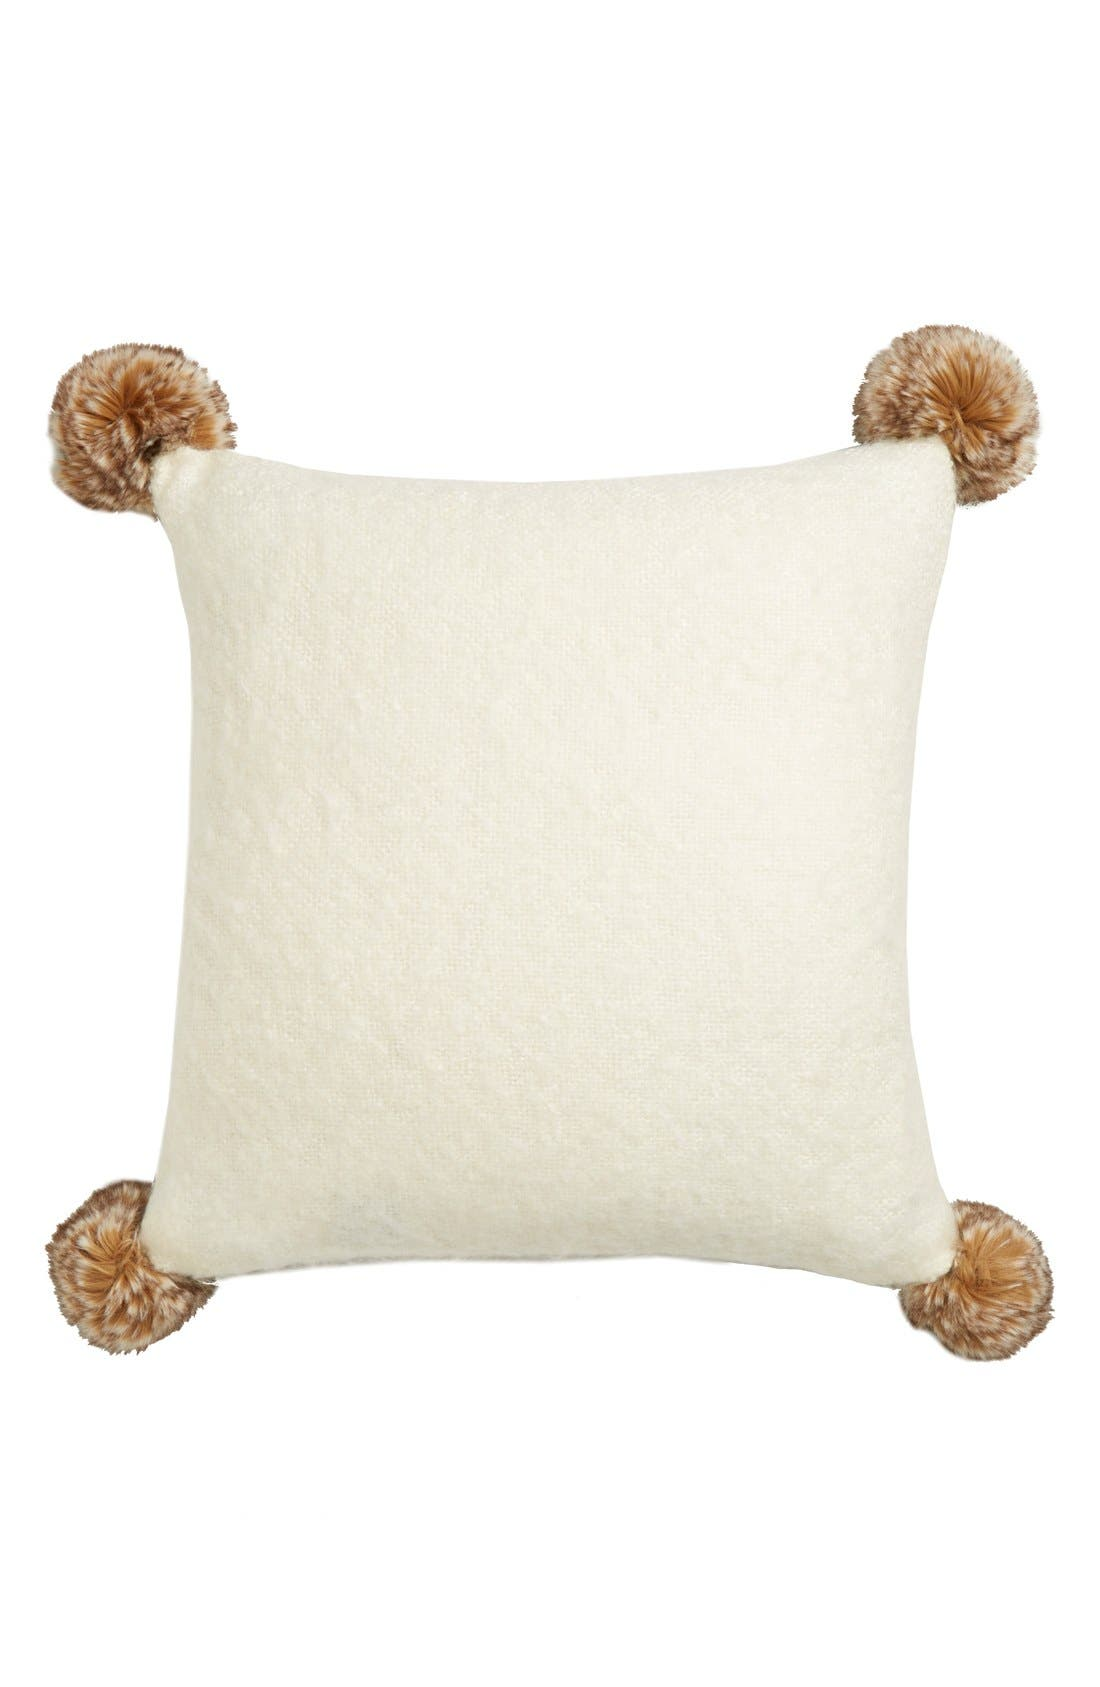 Brushed Accent Pillow with Pompoms,                             Main thumbnail 1, color,